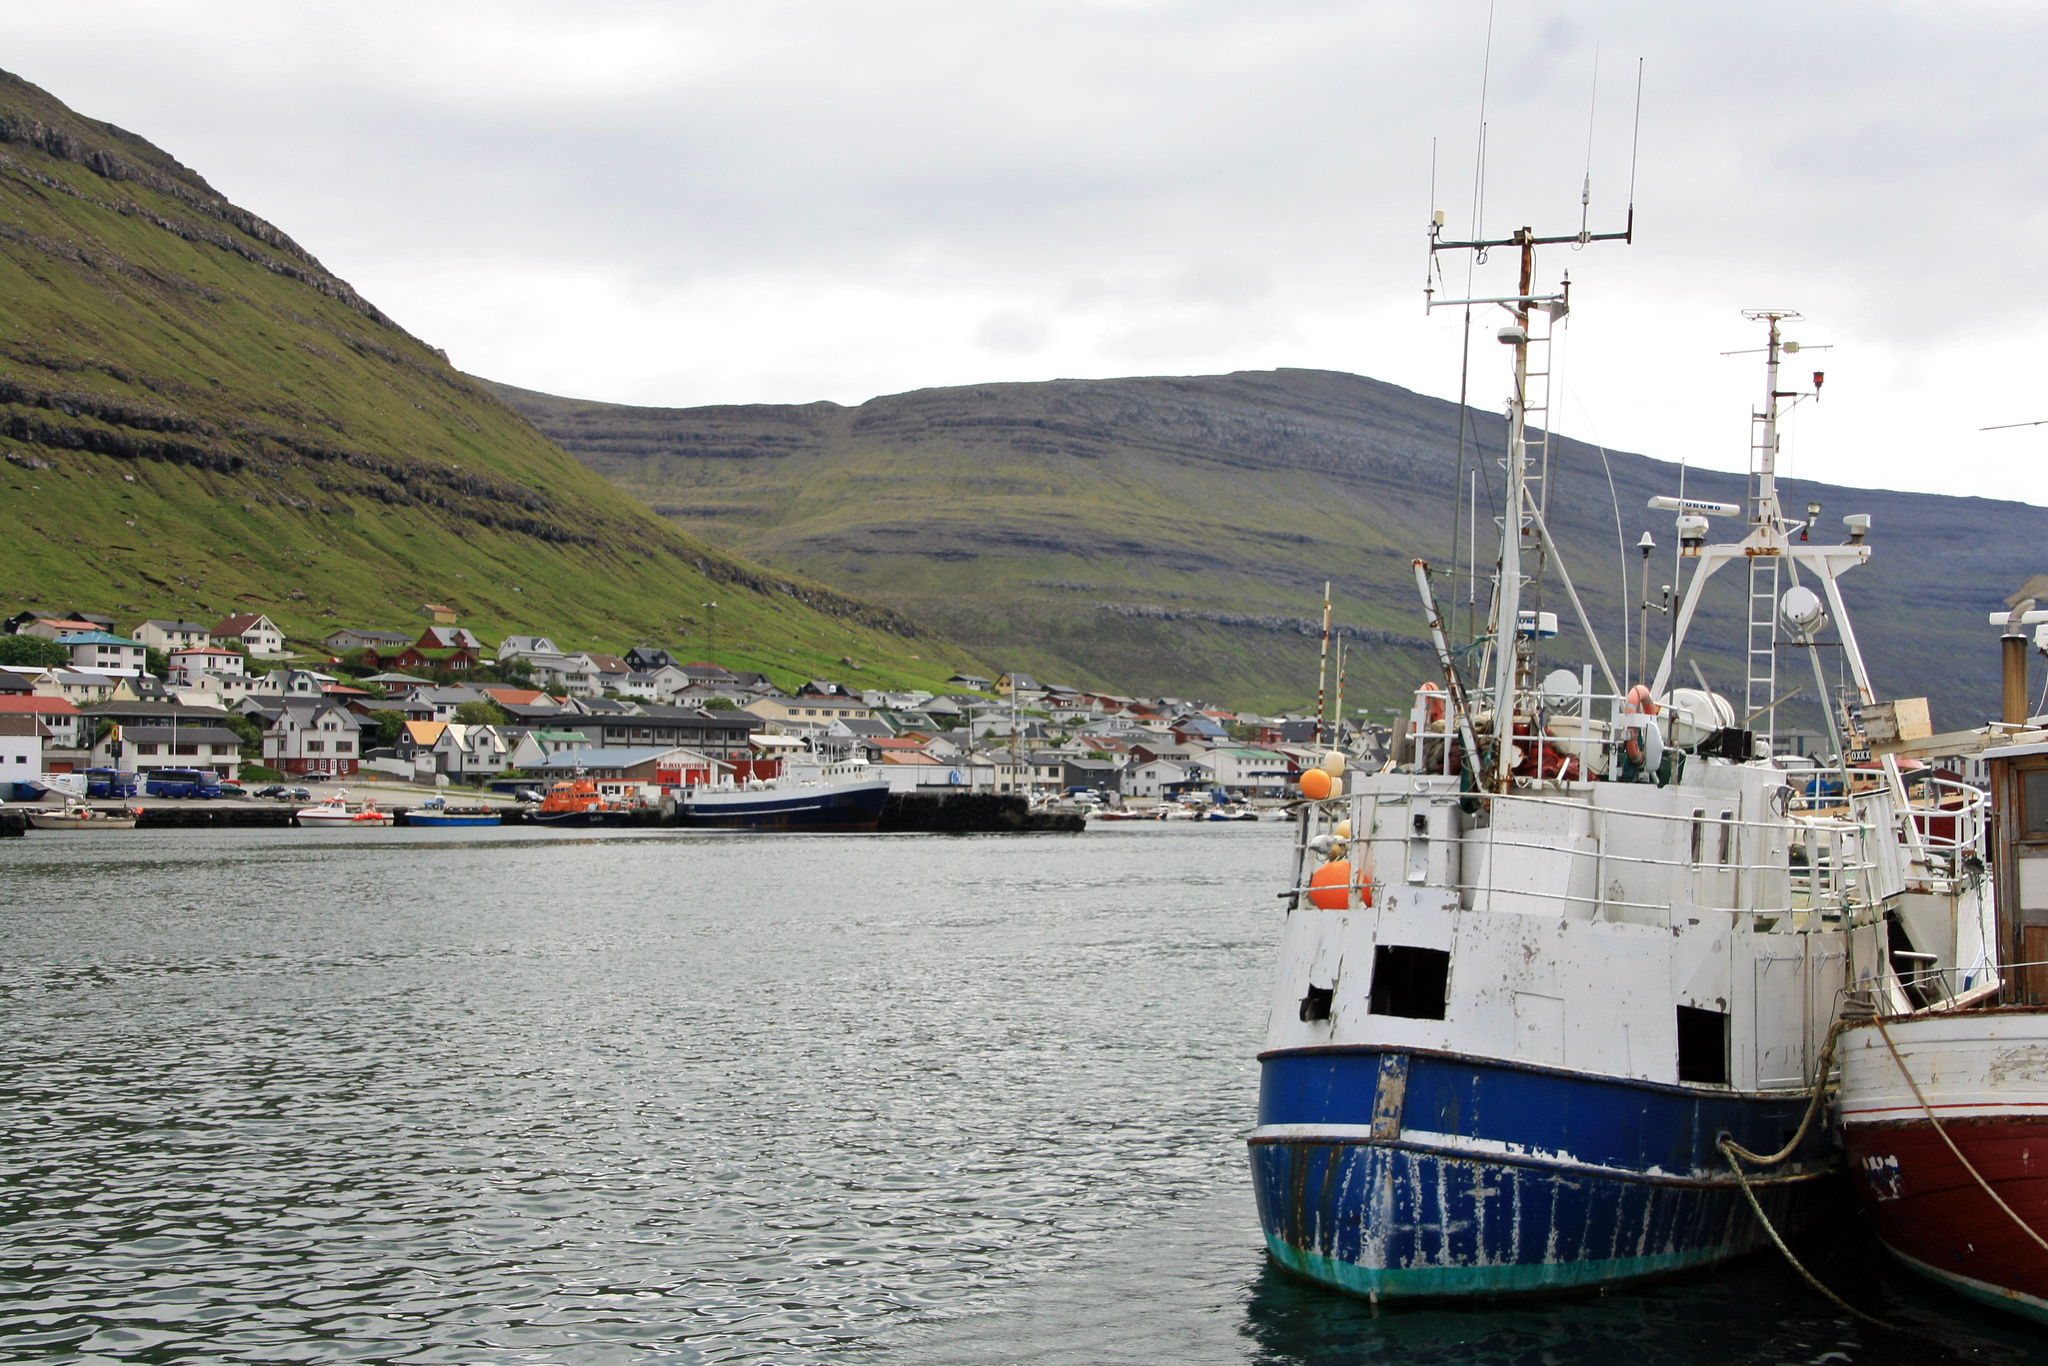 Redistributing resource rights in a resource-dependent economy: The case of the Faroese fisheries reform